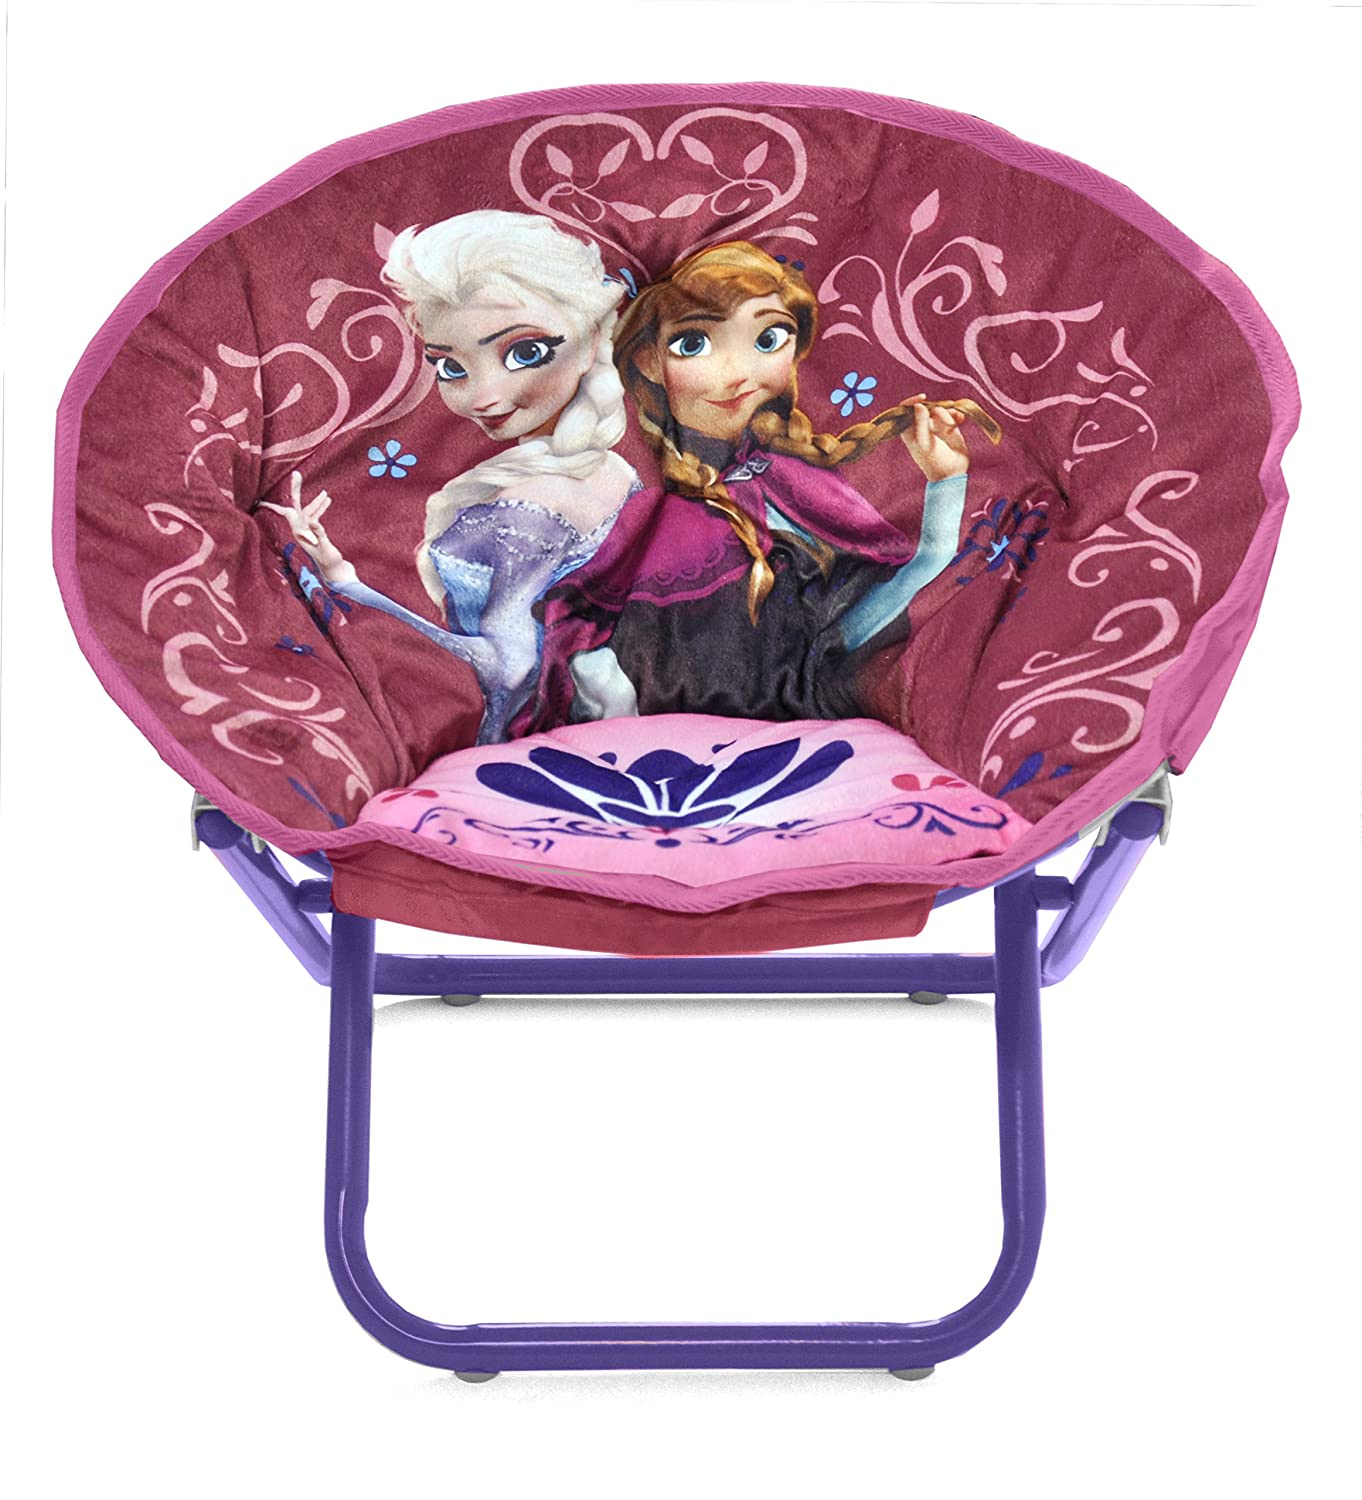 Elsa Chair Disney Frozen Saucer Chair Elsa Anna Seat Toddler Decor